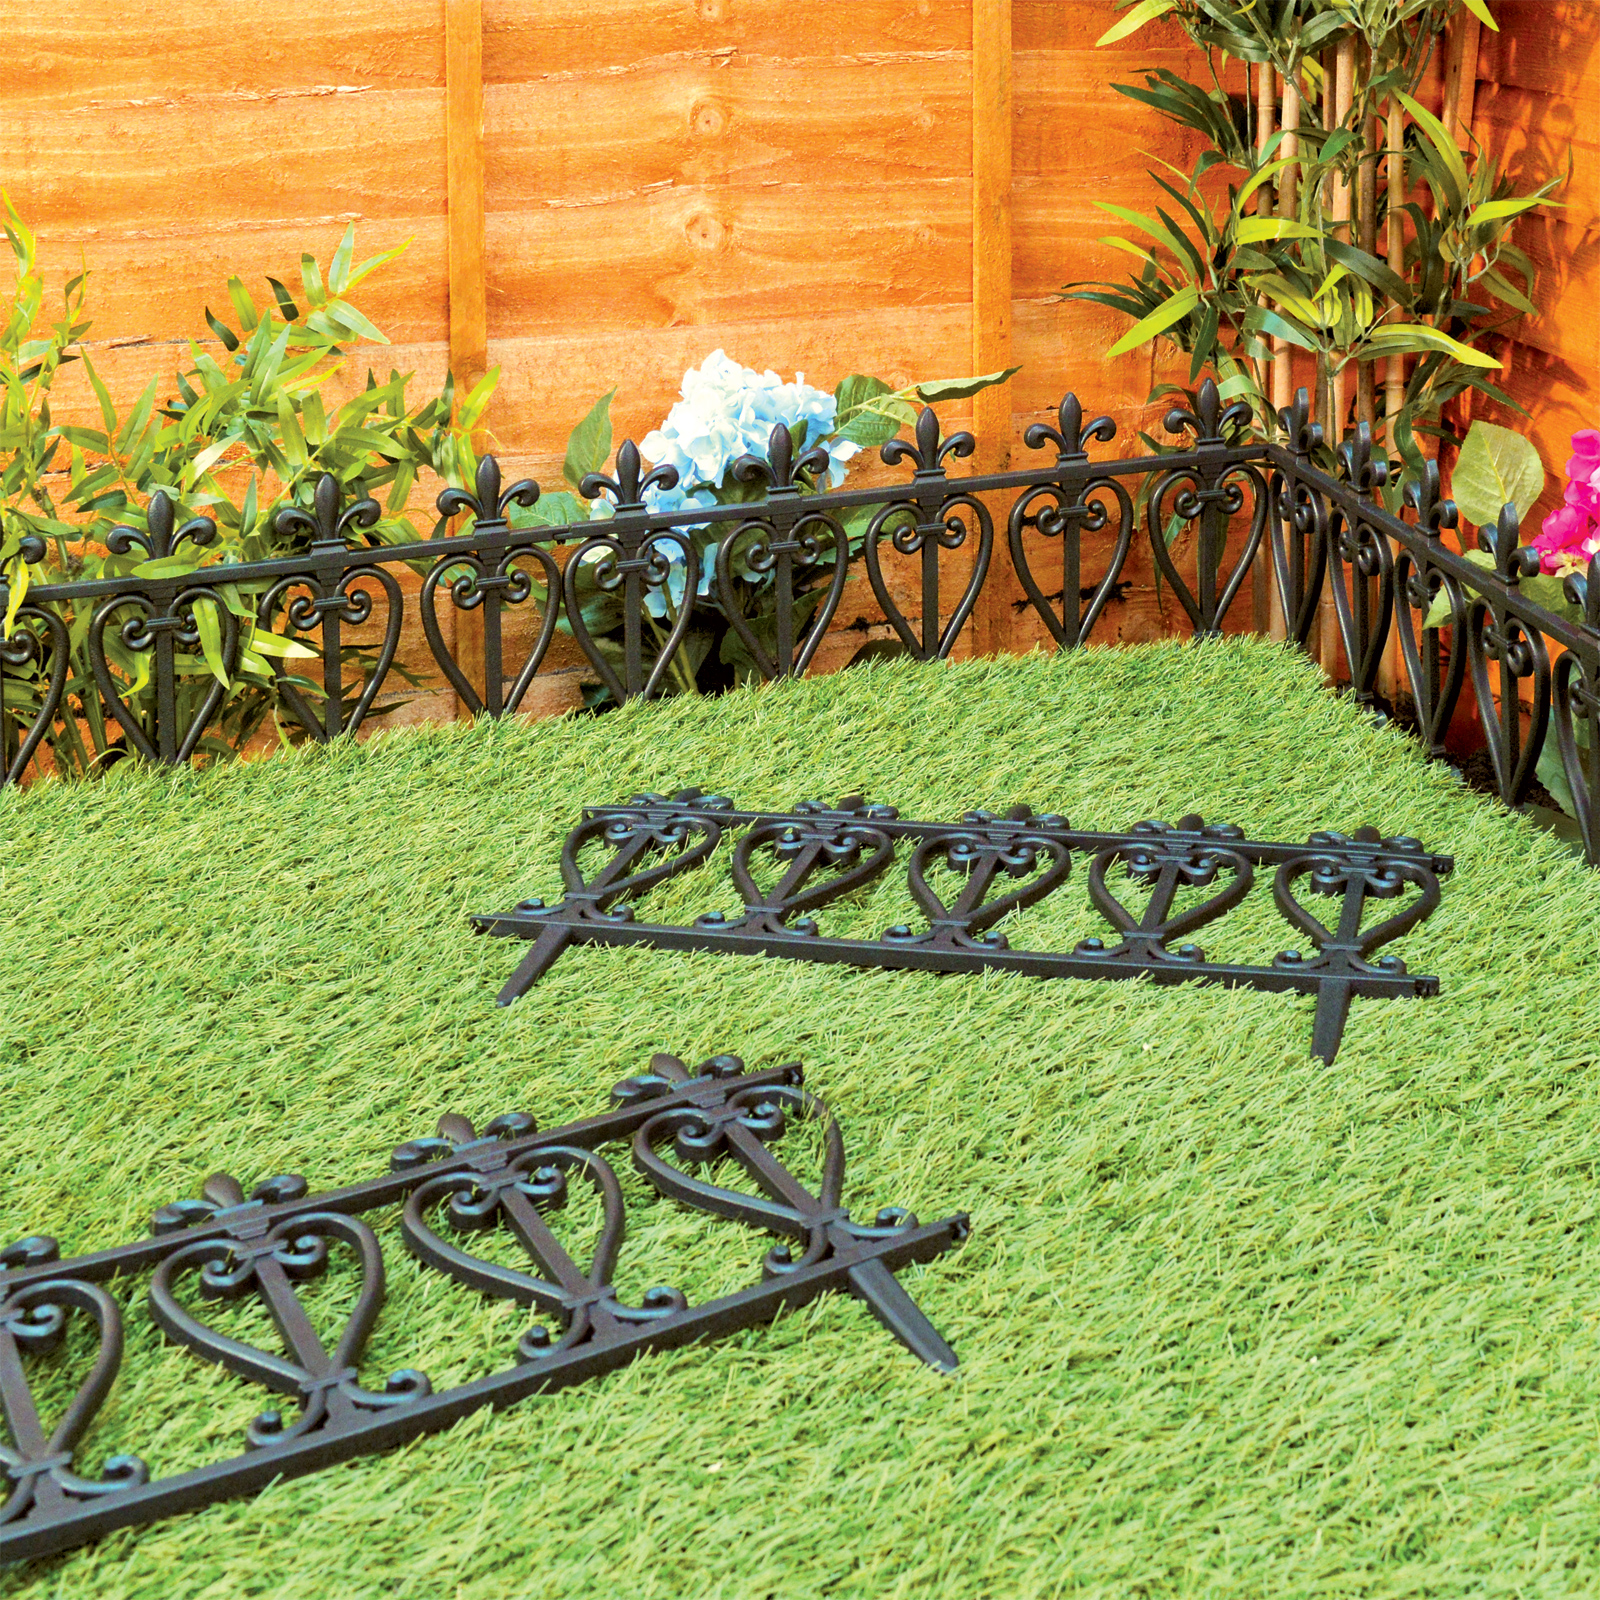 Garden Edging Lawn Flowerbed Border Fence Ornate Victorian Style